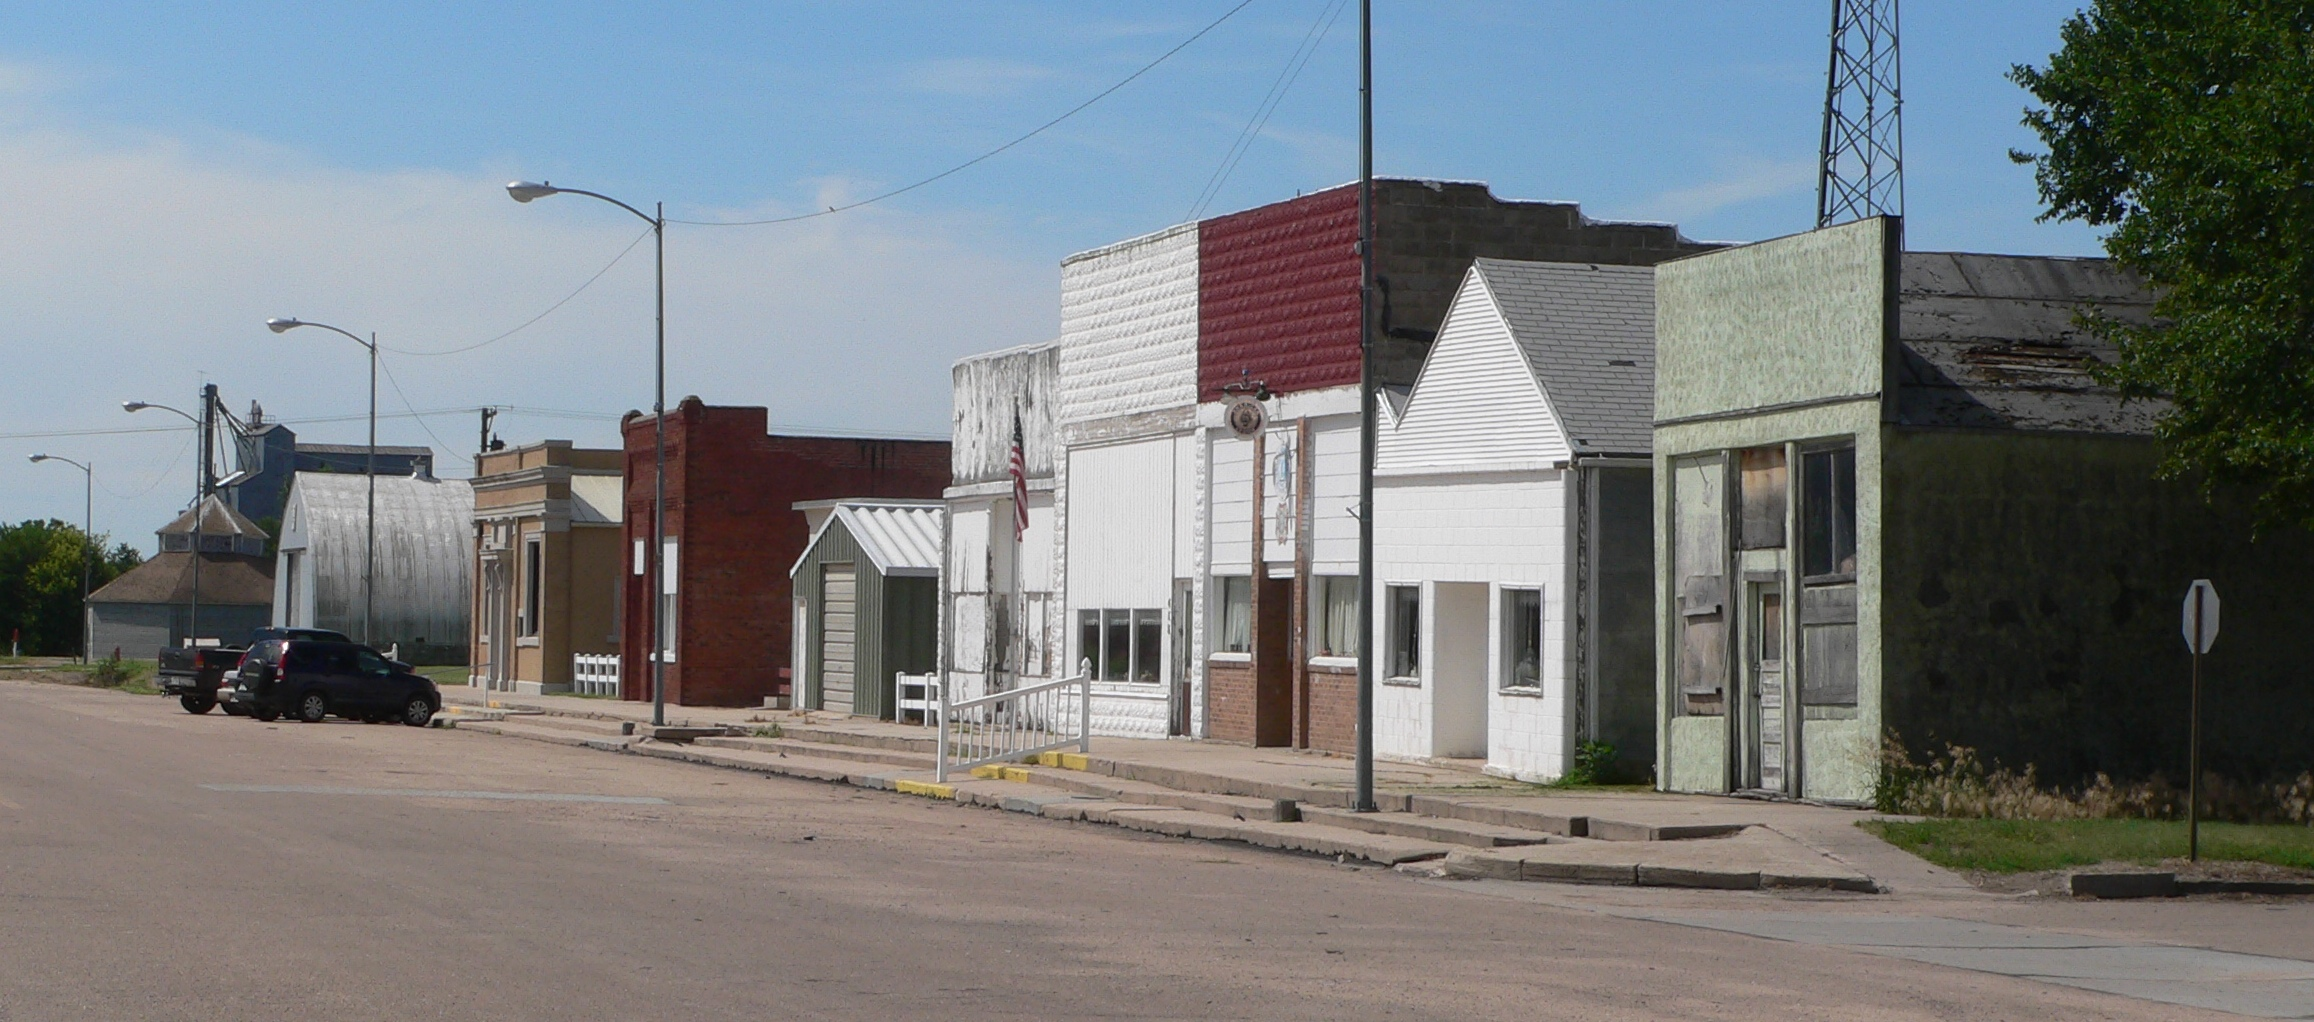 Bartley, Nebraska